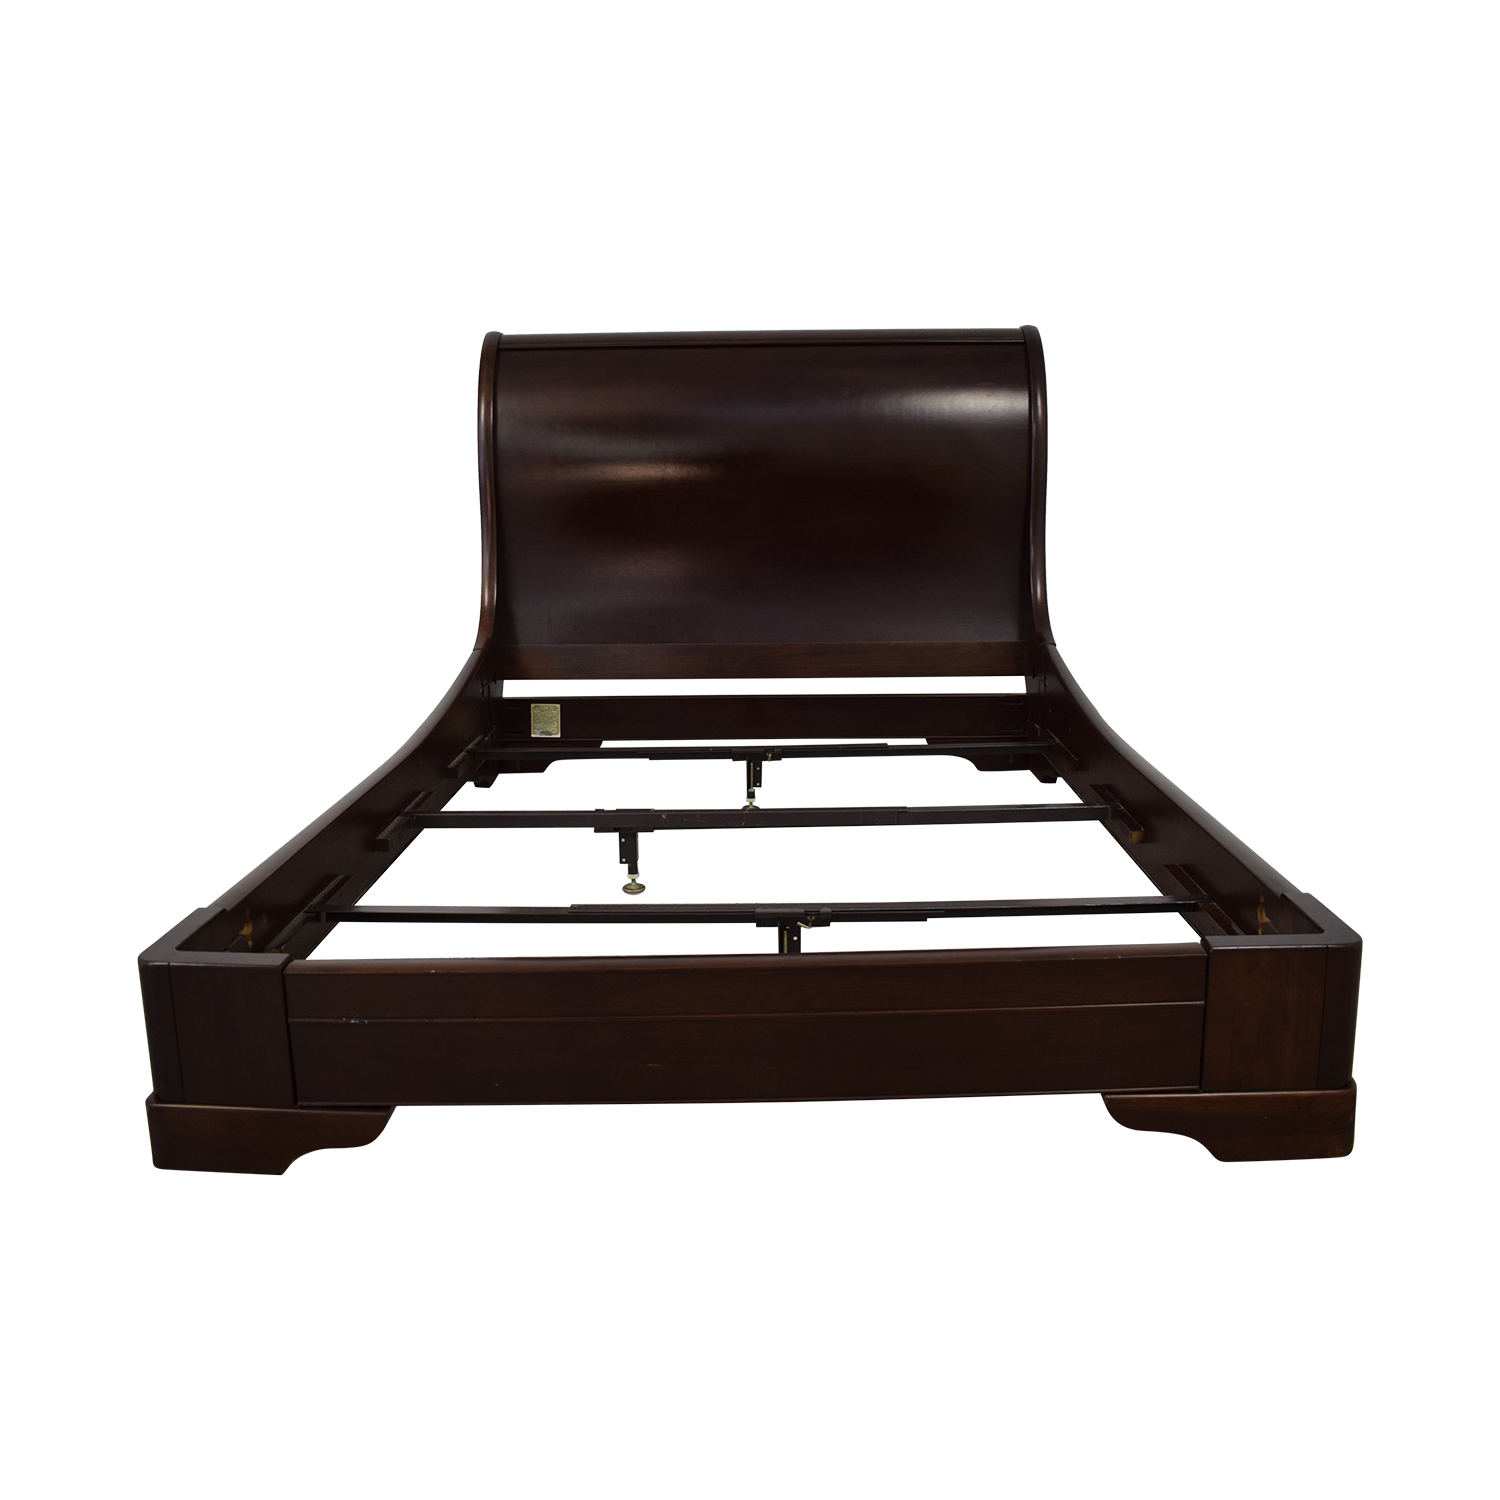 Restoration Hardware Restoration Hardware Mareston Queen Sleigh Bed nj